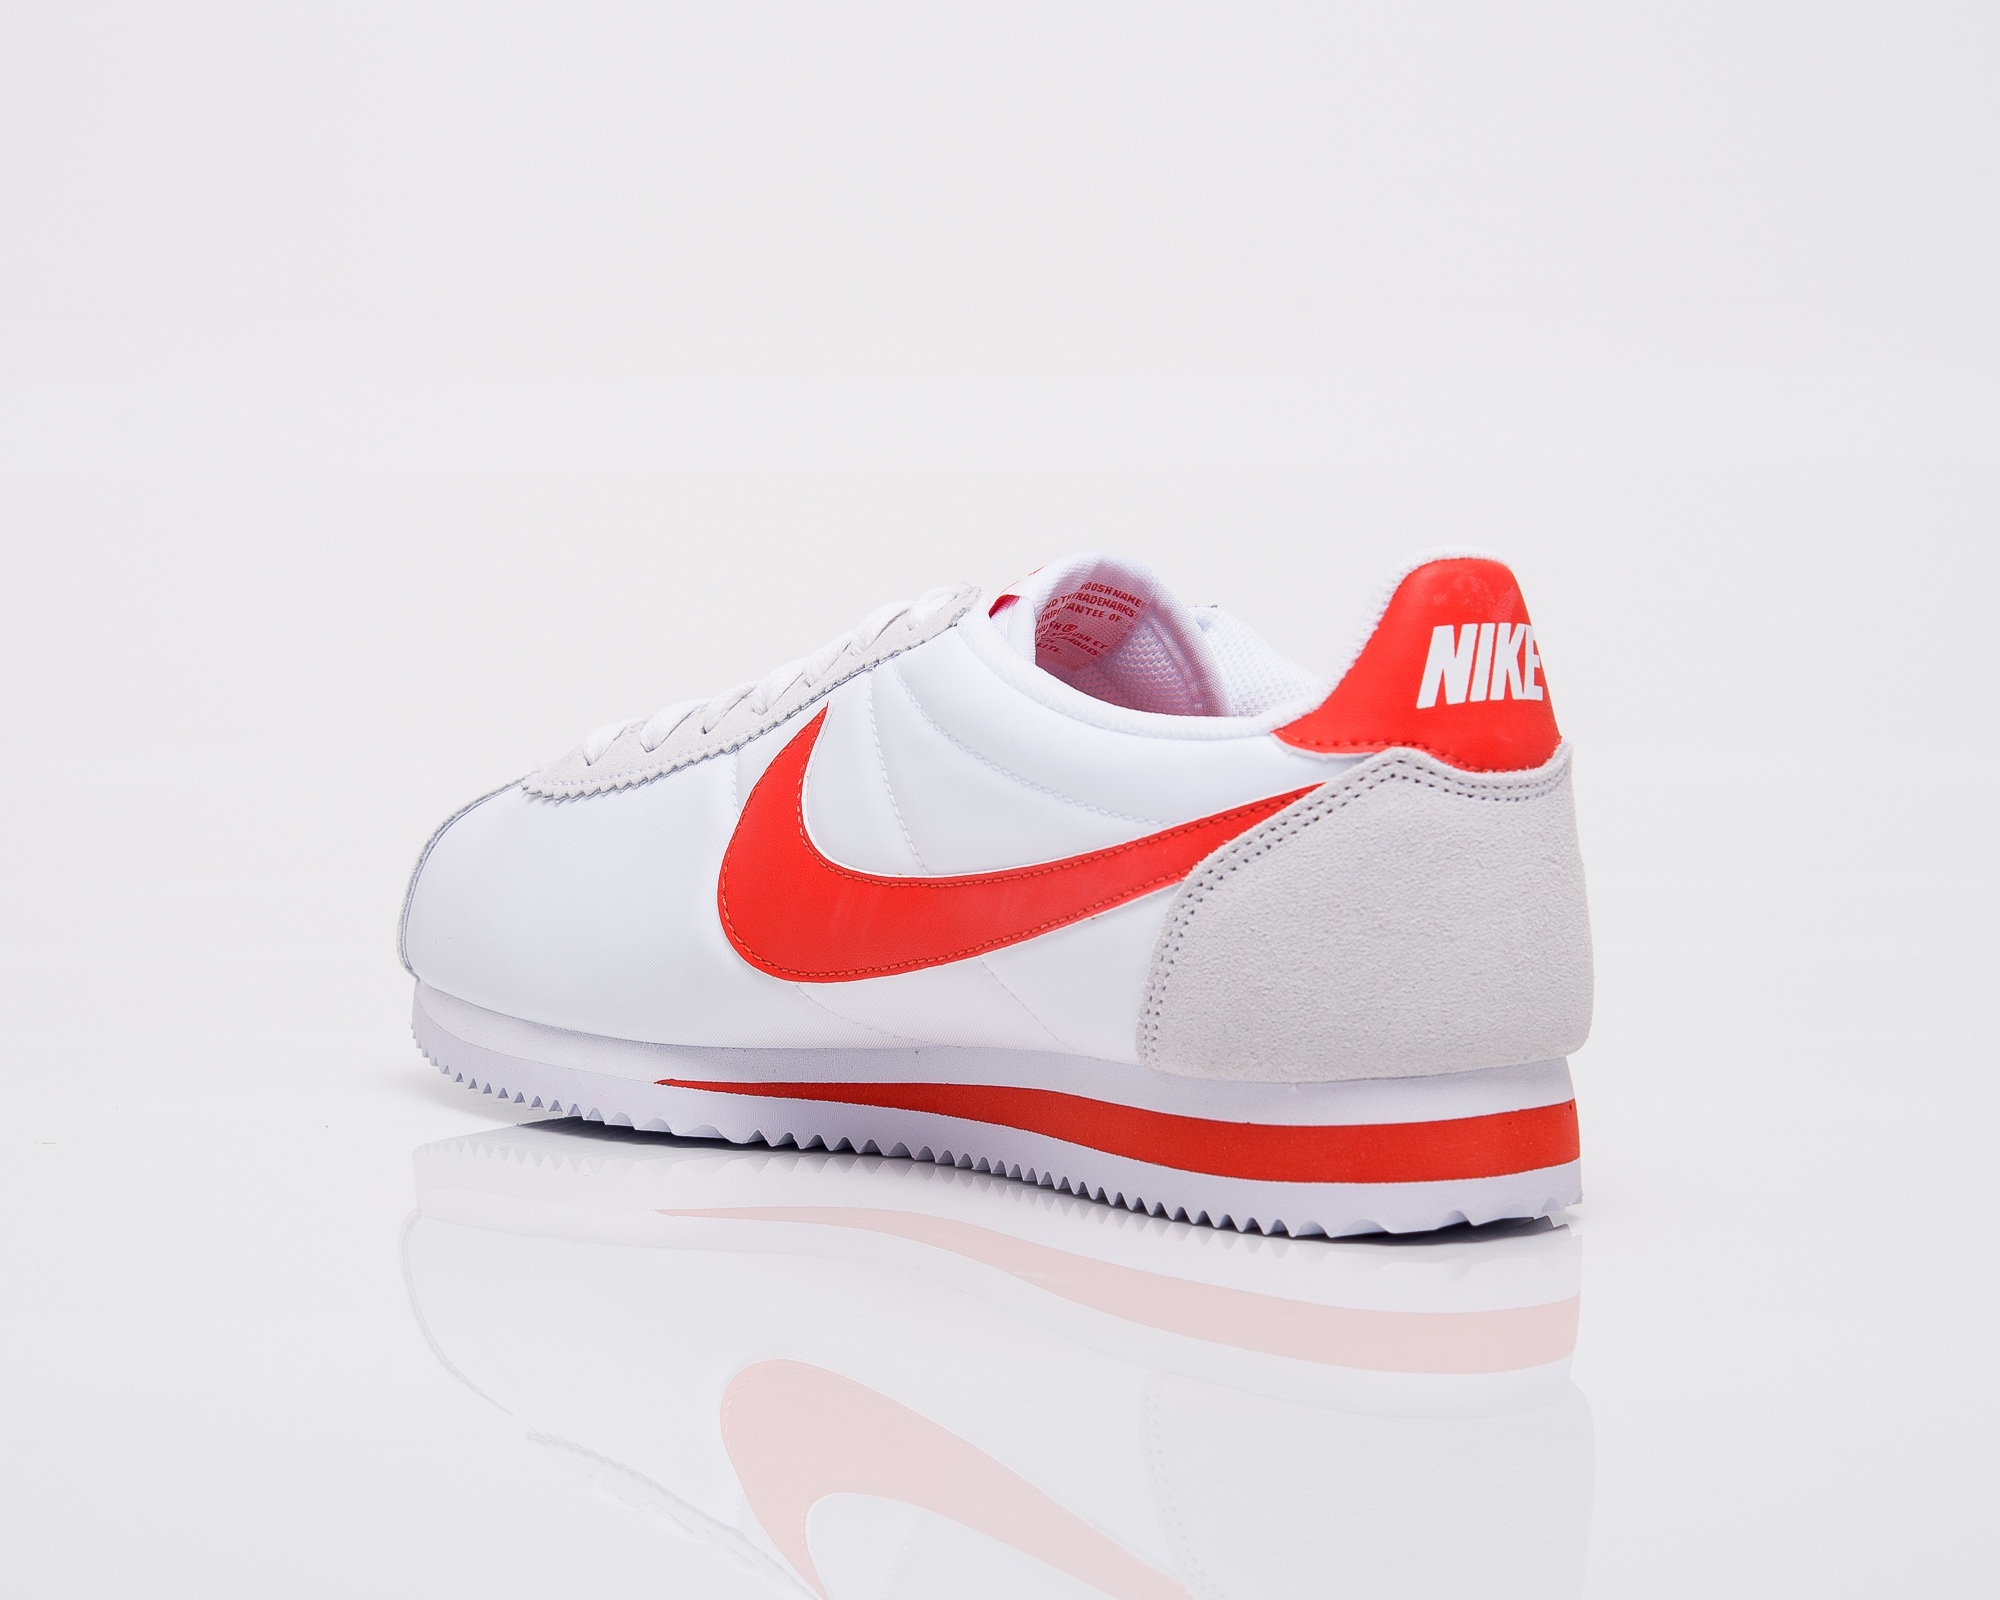 62b150220a Nike Classic Cortez Nylon - Shoes Casual - Sporting goods